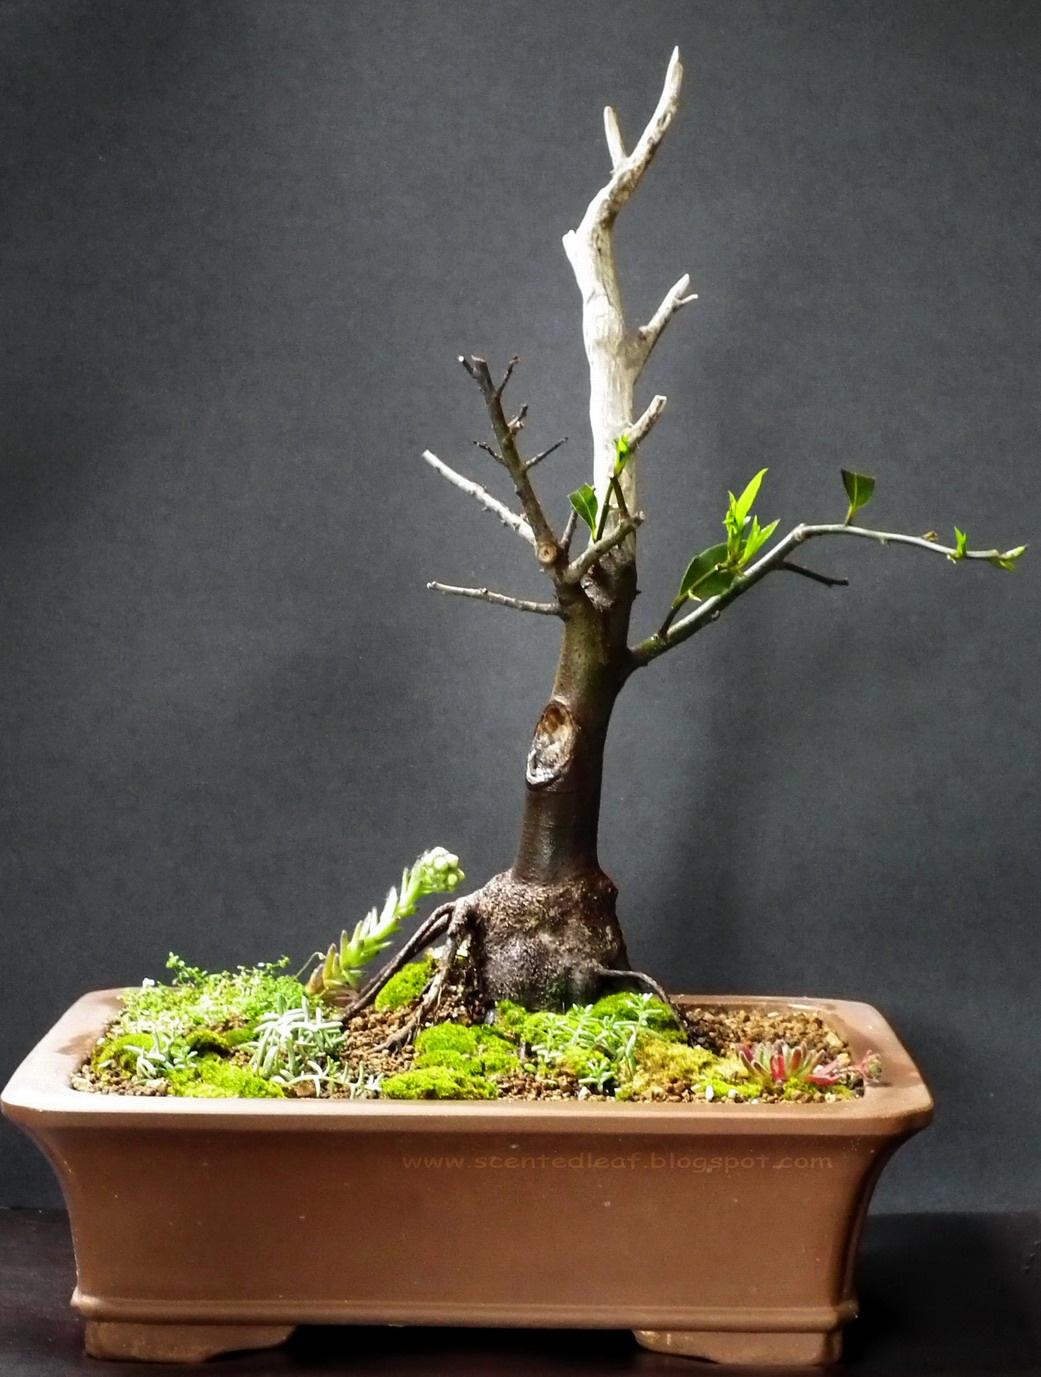 Scented Leaf Bay Laurel Bonsai